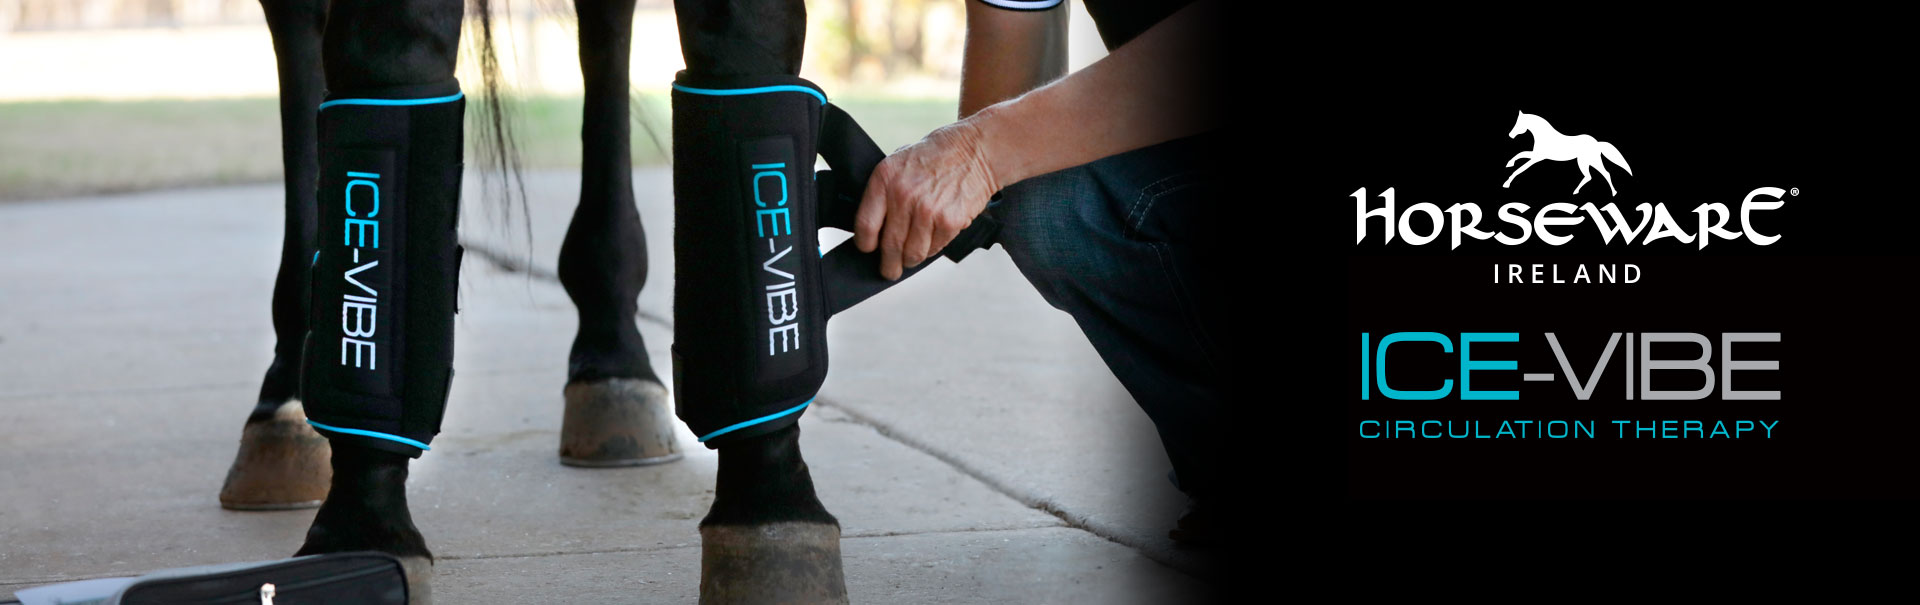 Ice Vibe by Horseware